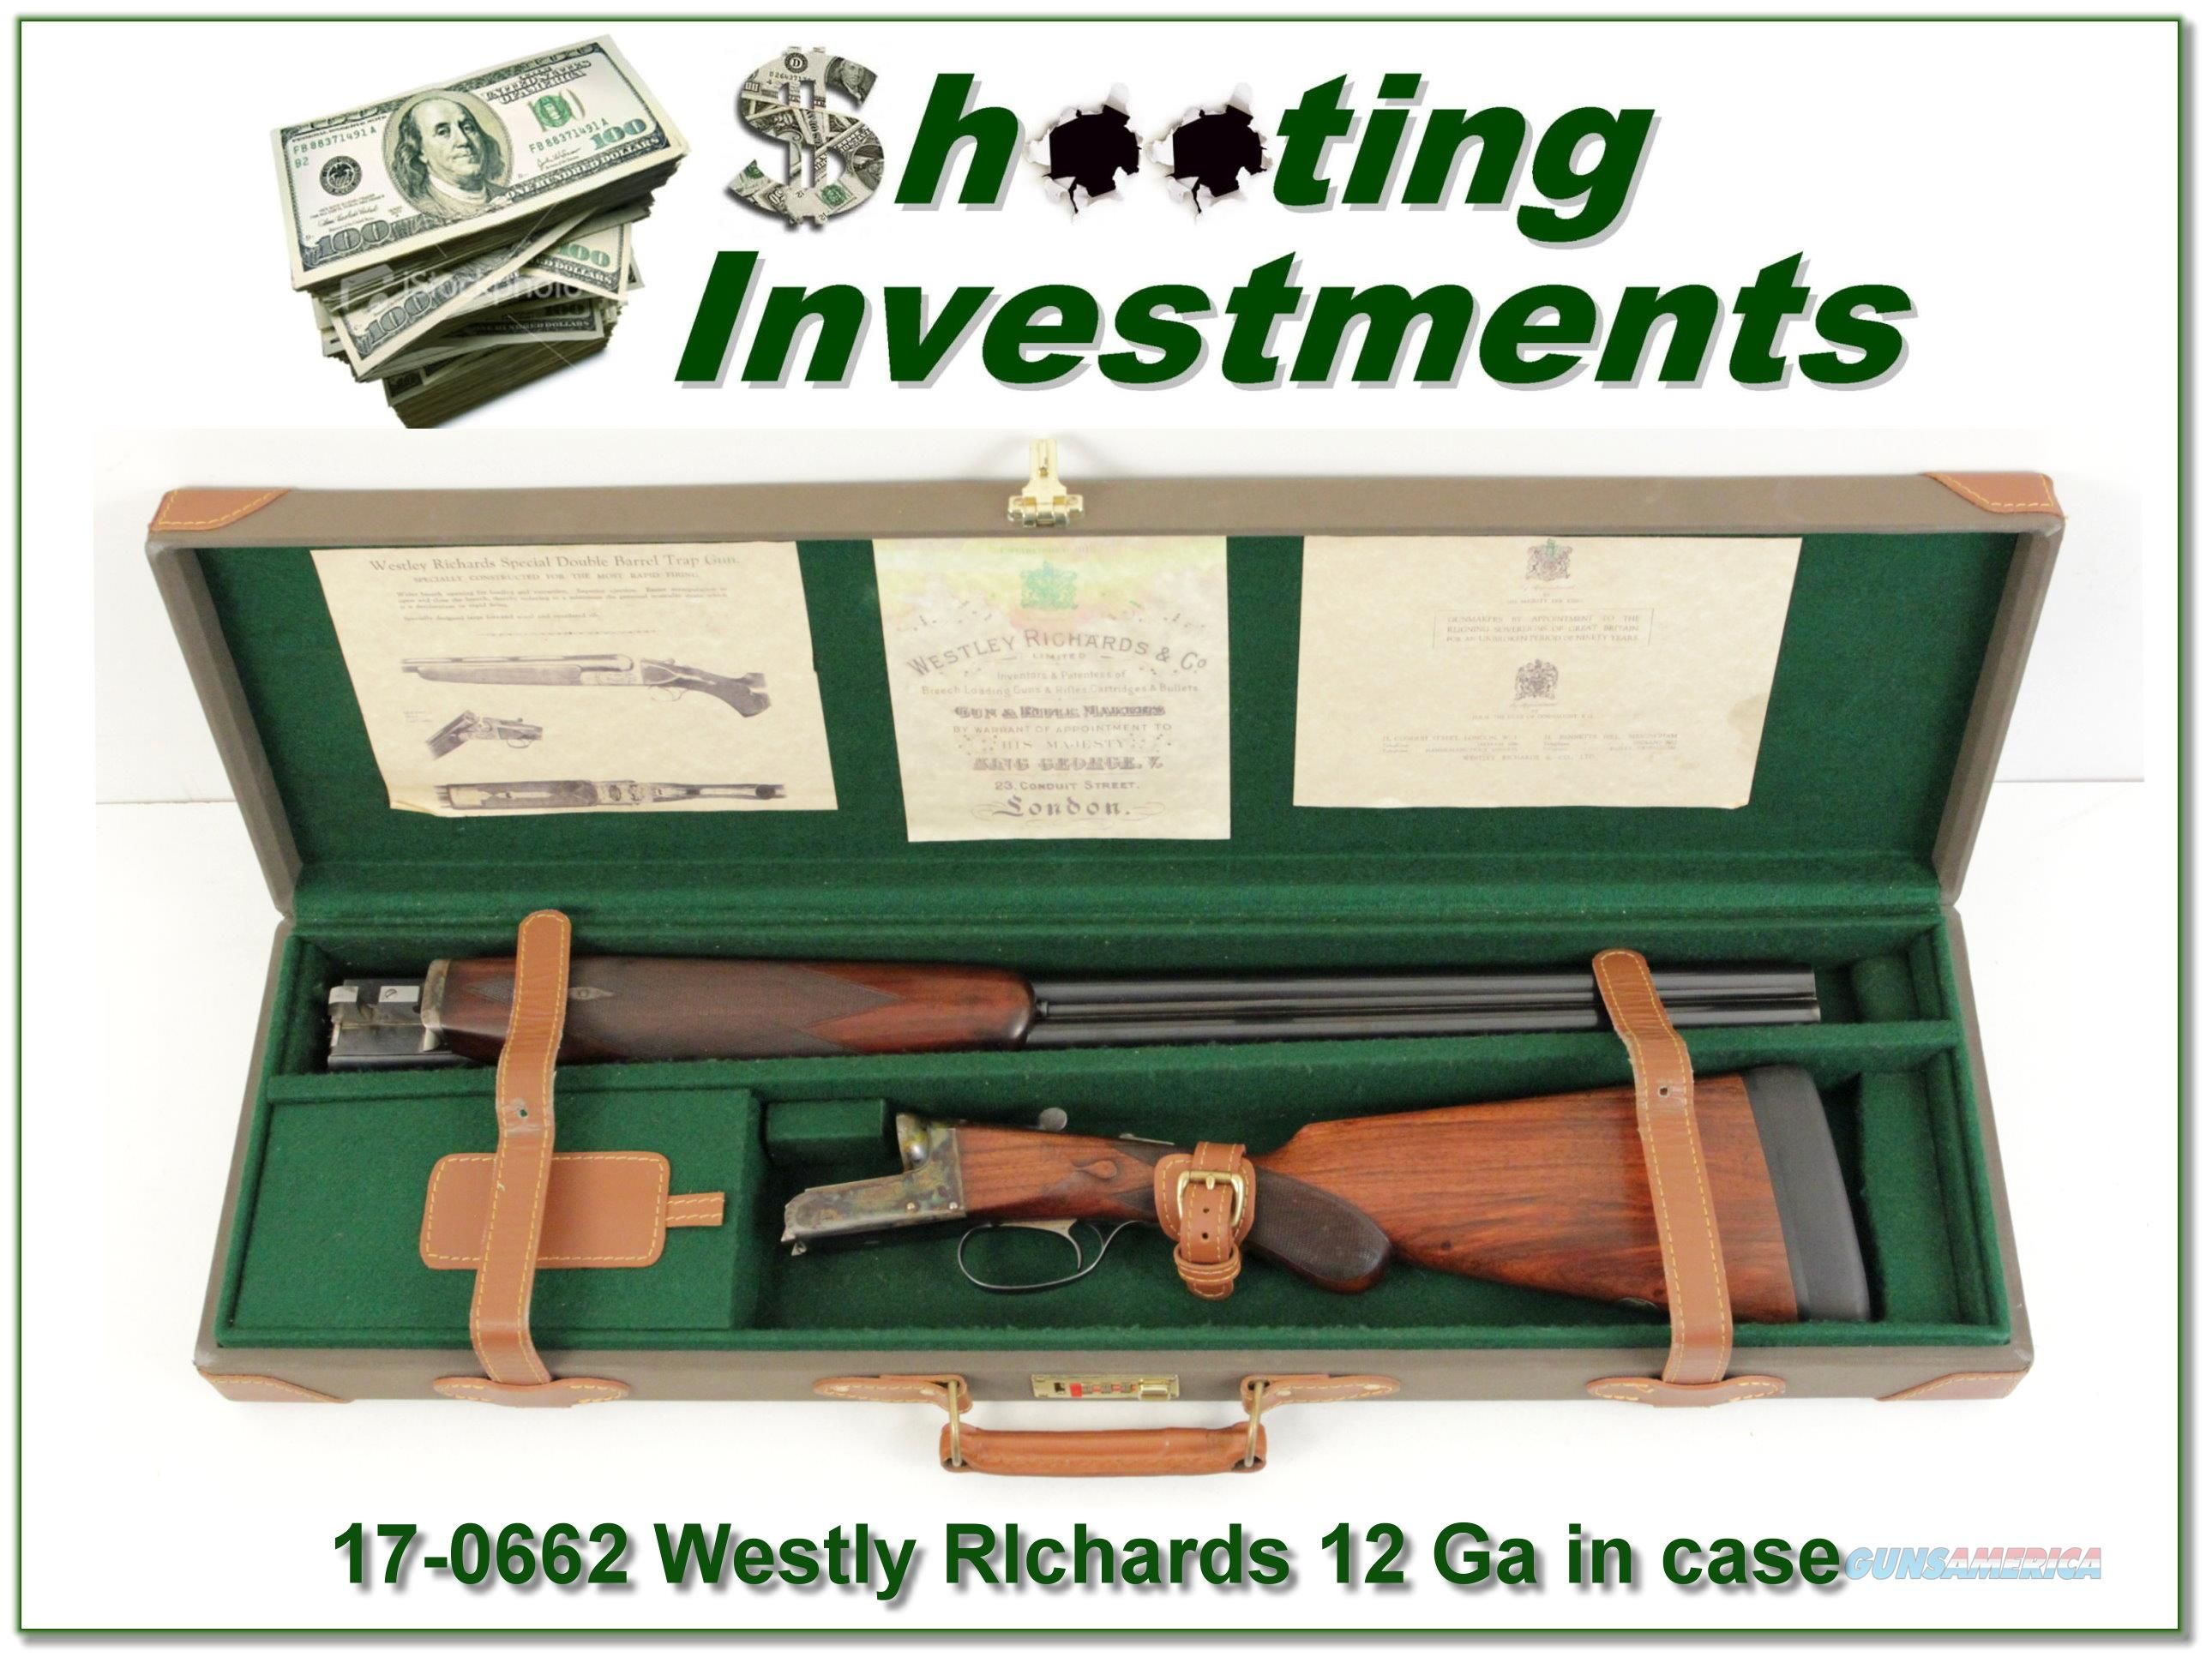 Westley Richards 12 Gauge Exc Cond in case  Guns > Shotguns > Westley Richards Shotguns